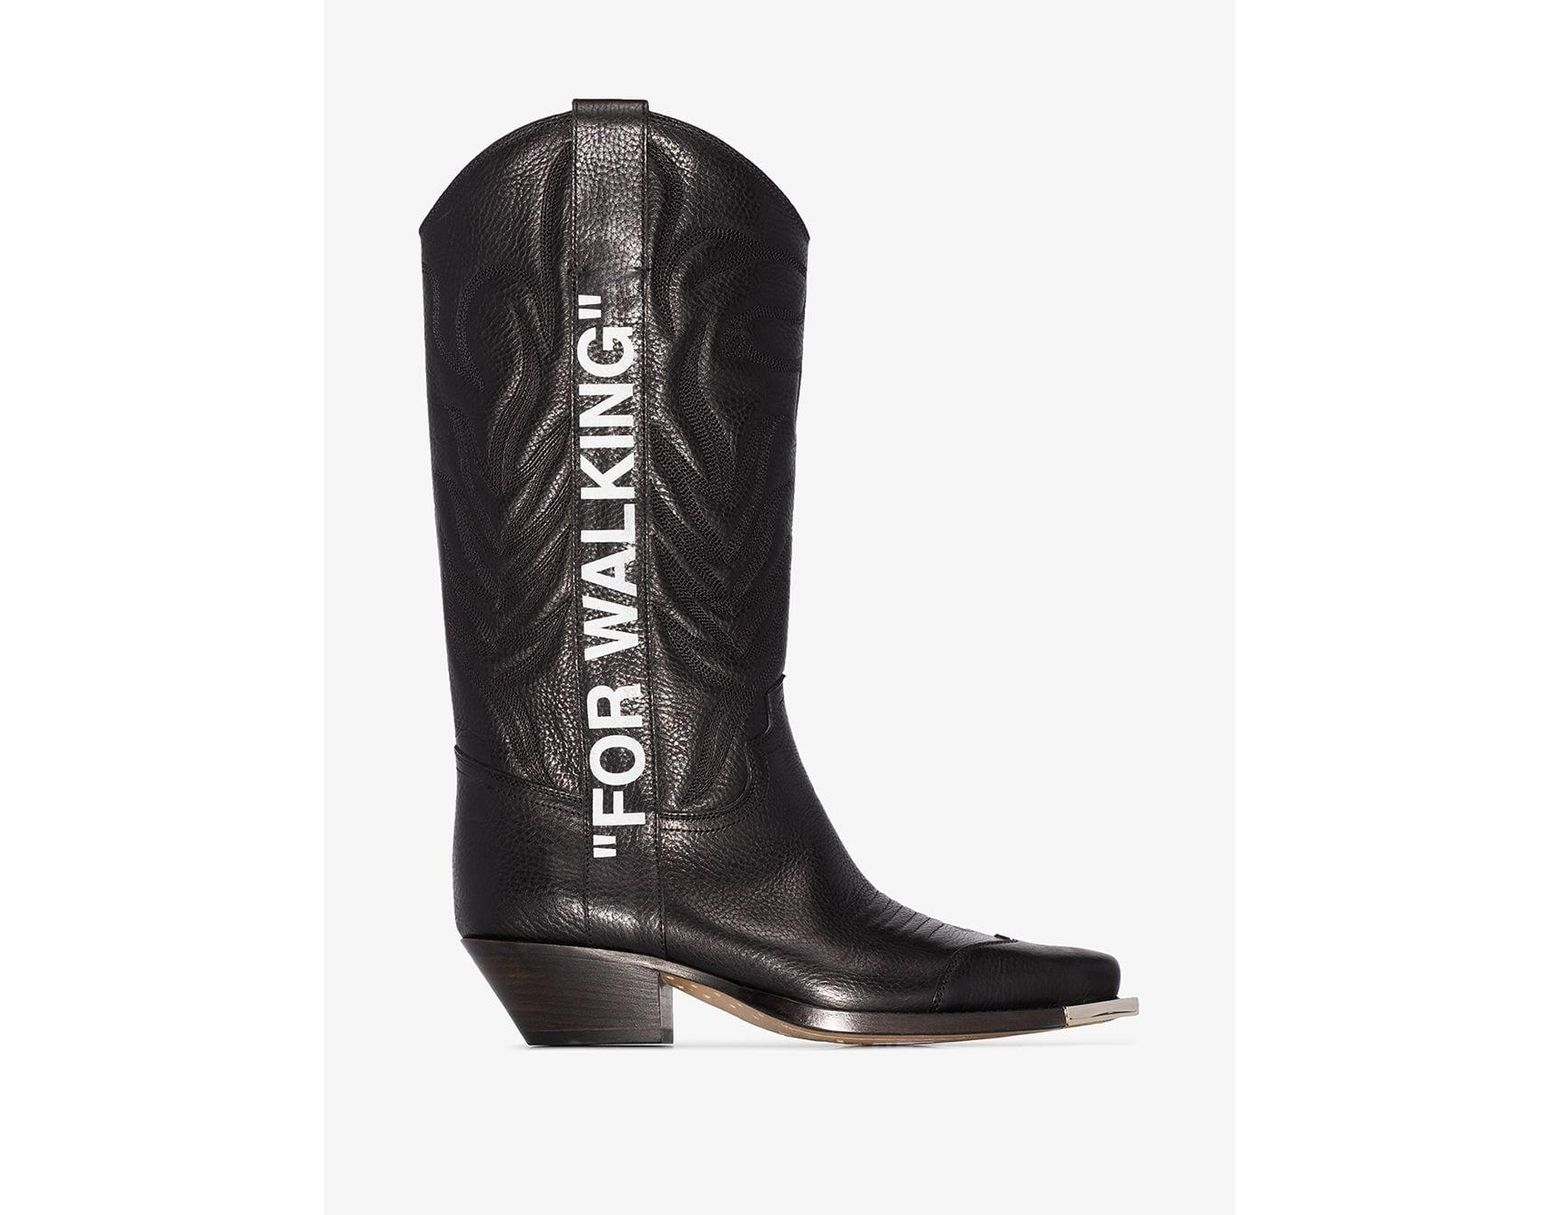 36ce6a802 Off-White c/o Virgil Abloh Black For Walking Cowboy Boots in Black - Lyst